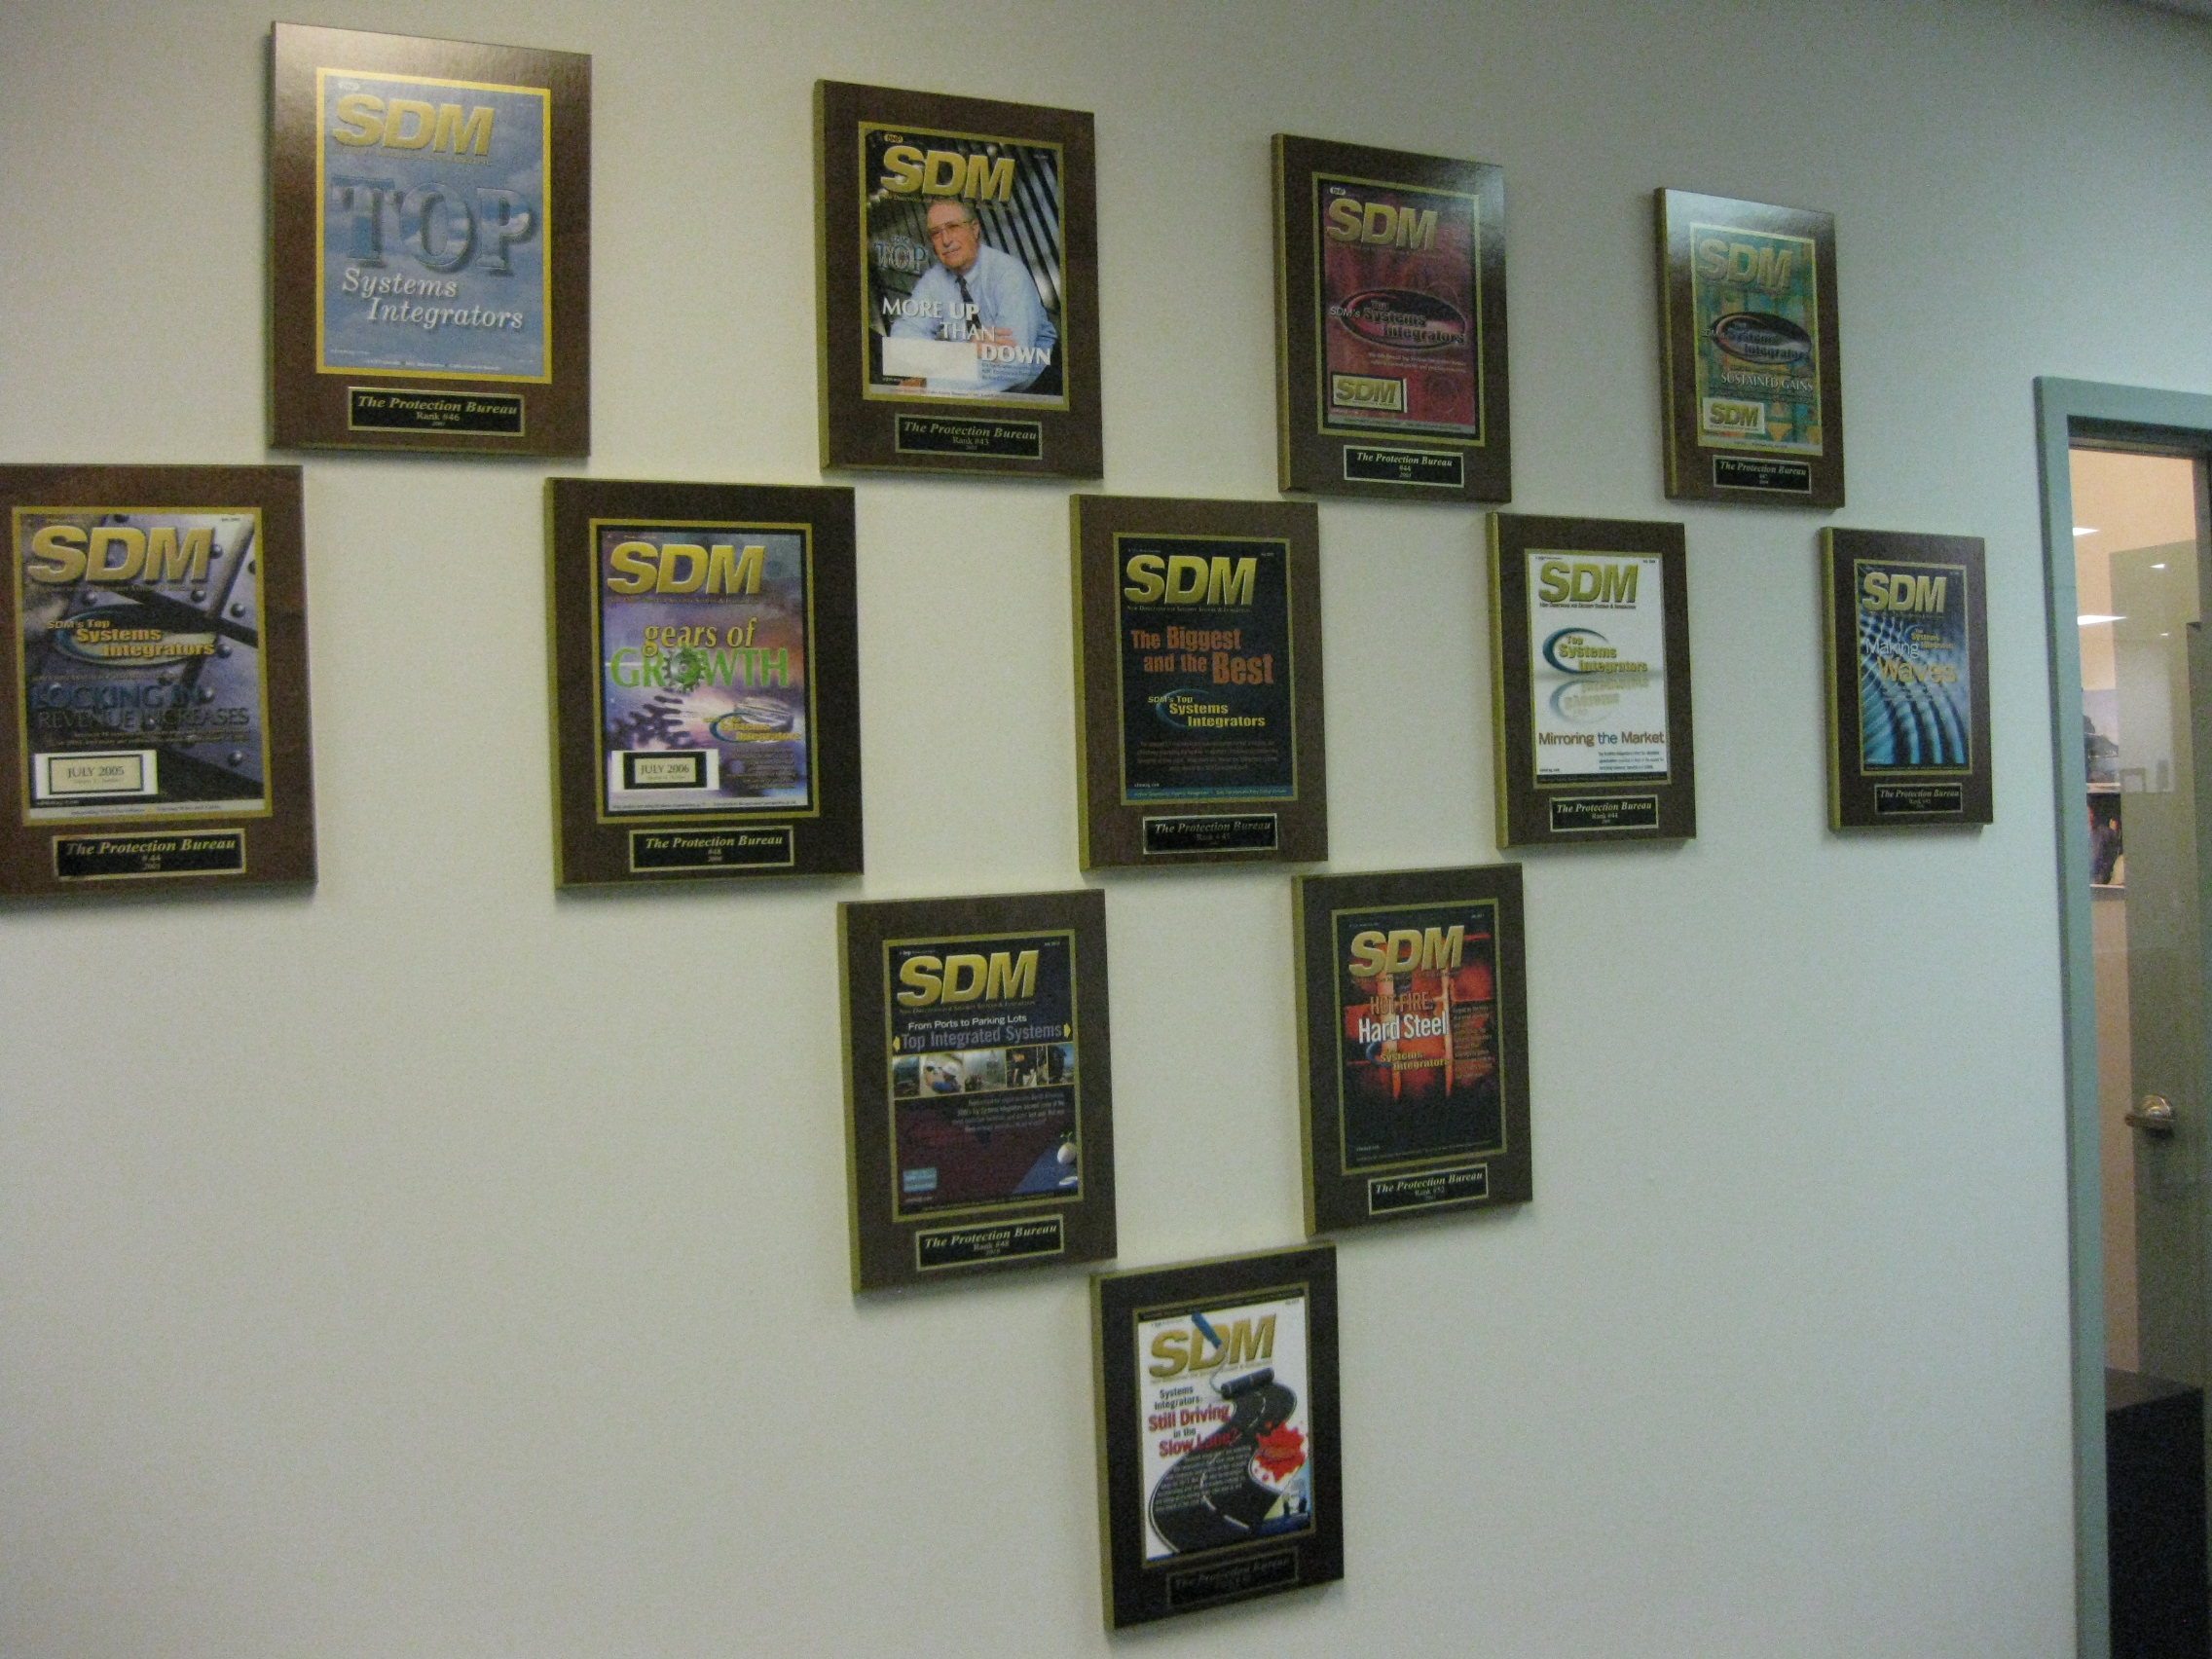 raming a magazine article, magazine frame, laminated plaques, personalized plaques, newspaper article plaques, magazine article framing